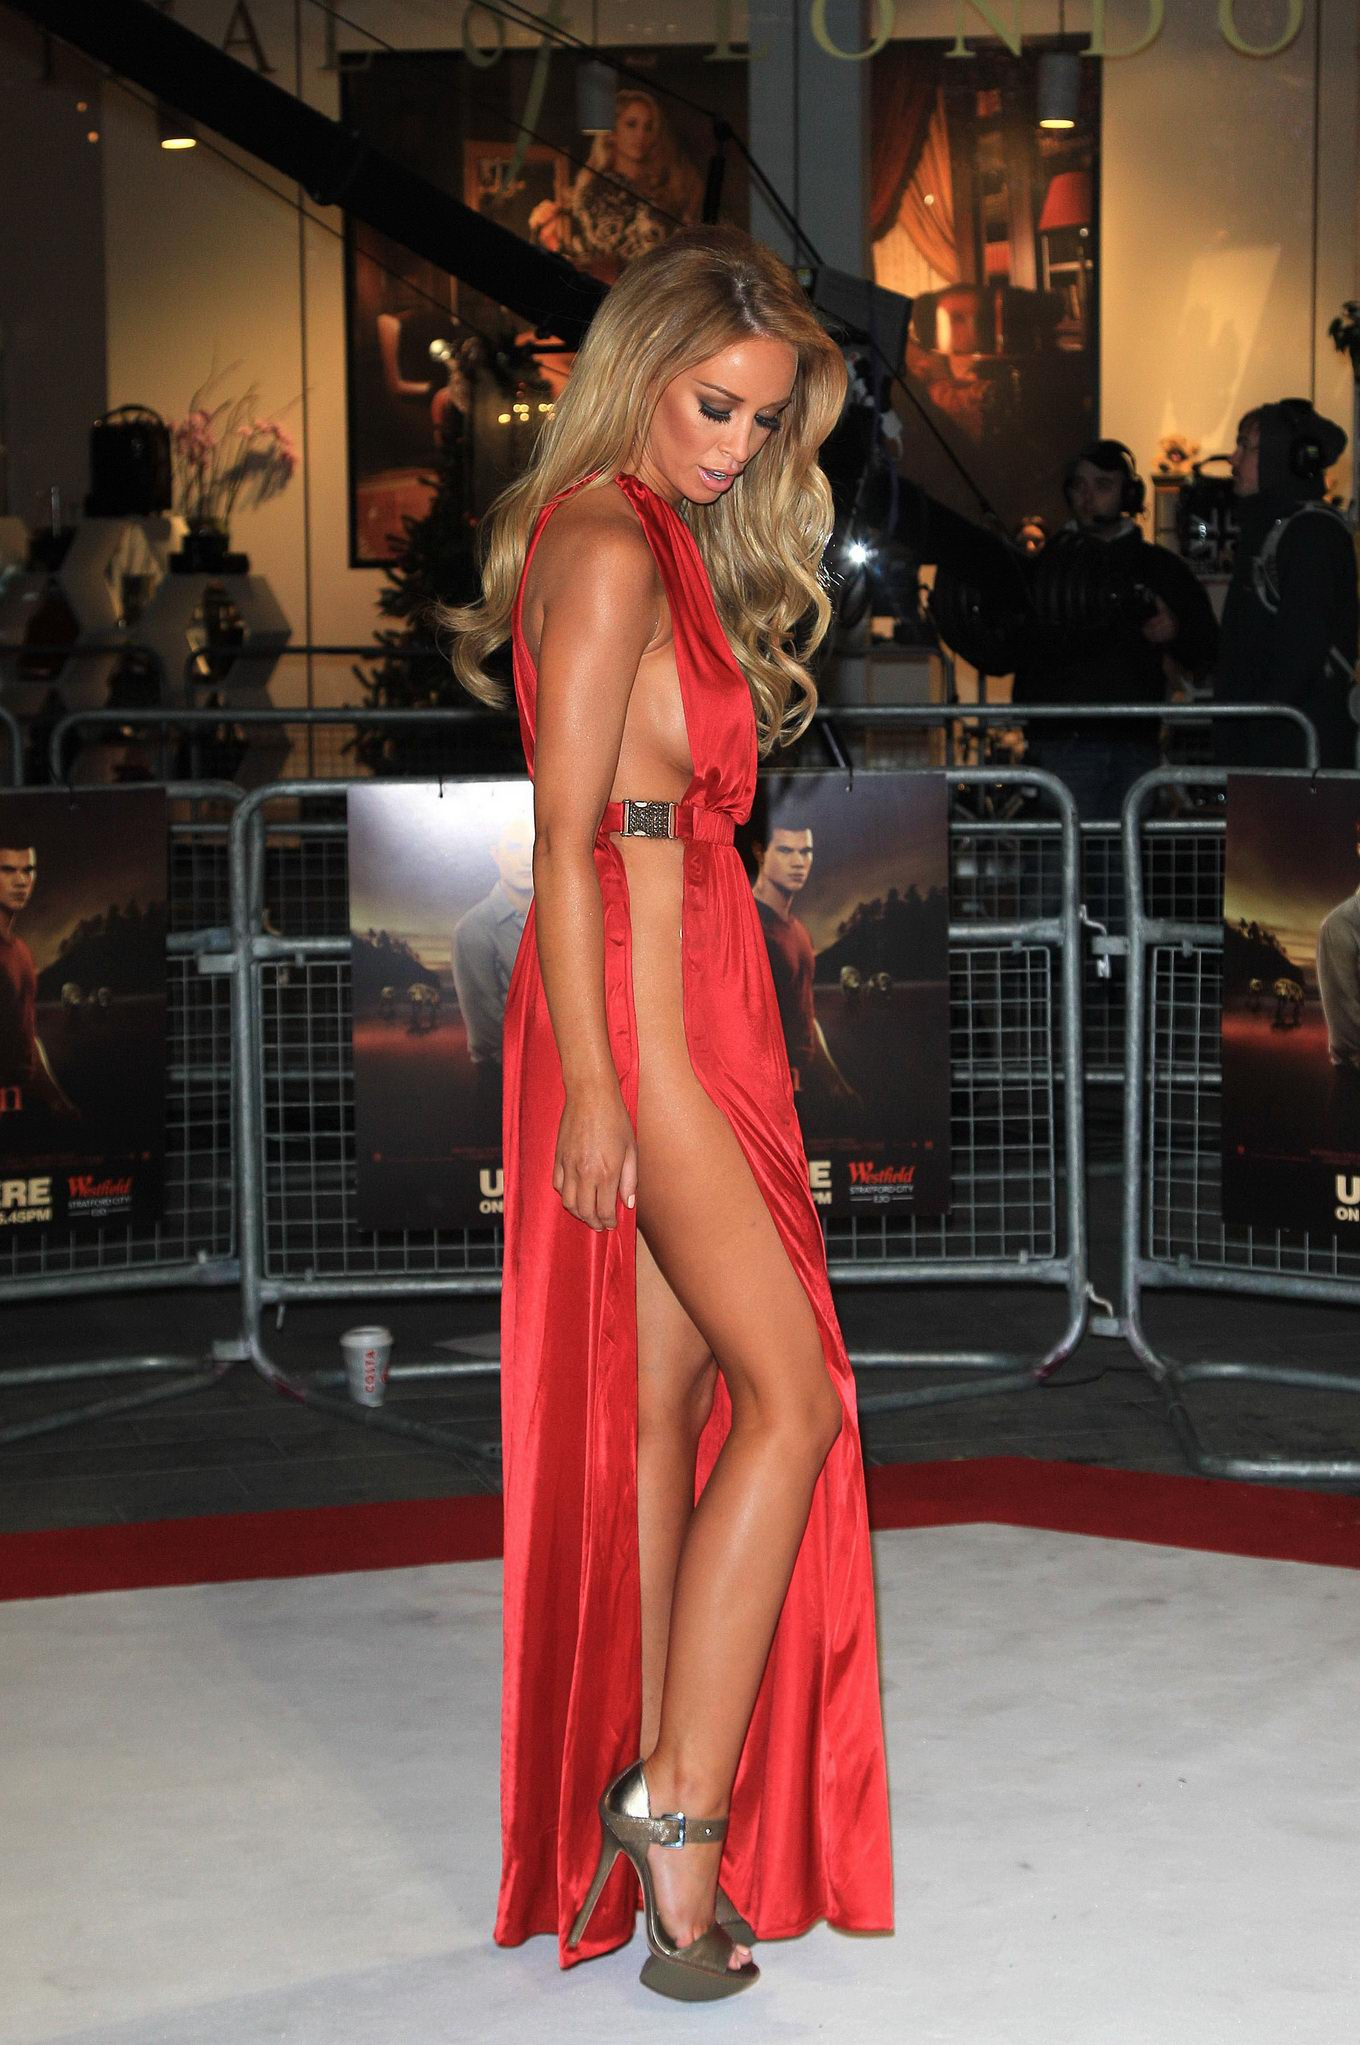 lauren pope naked fuck